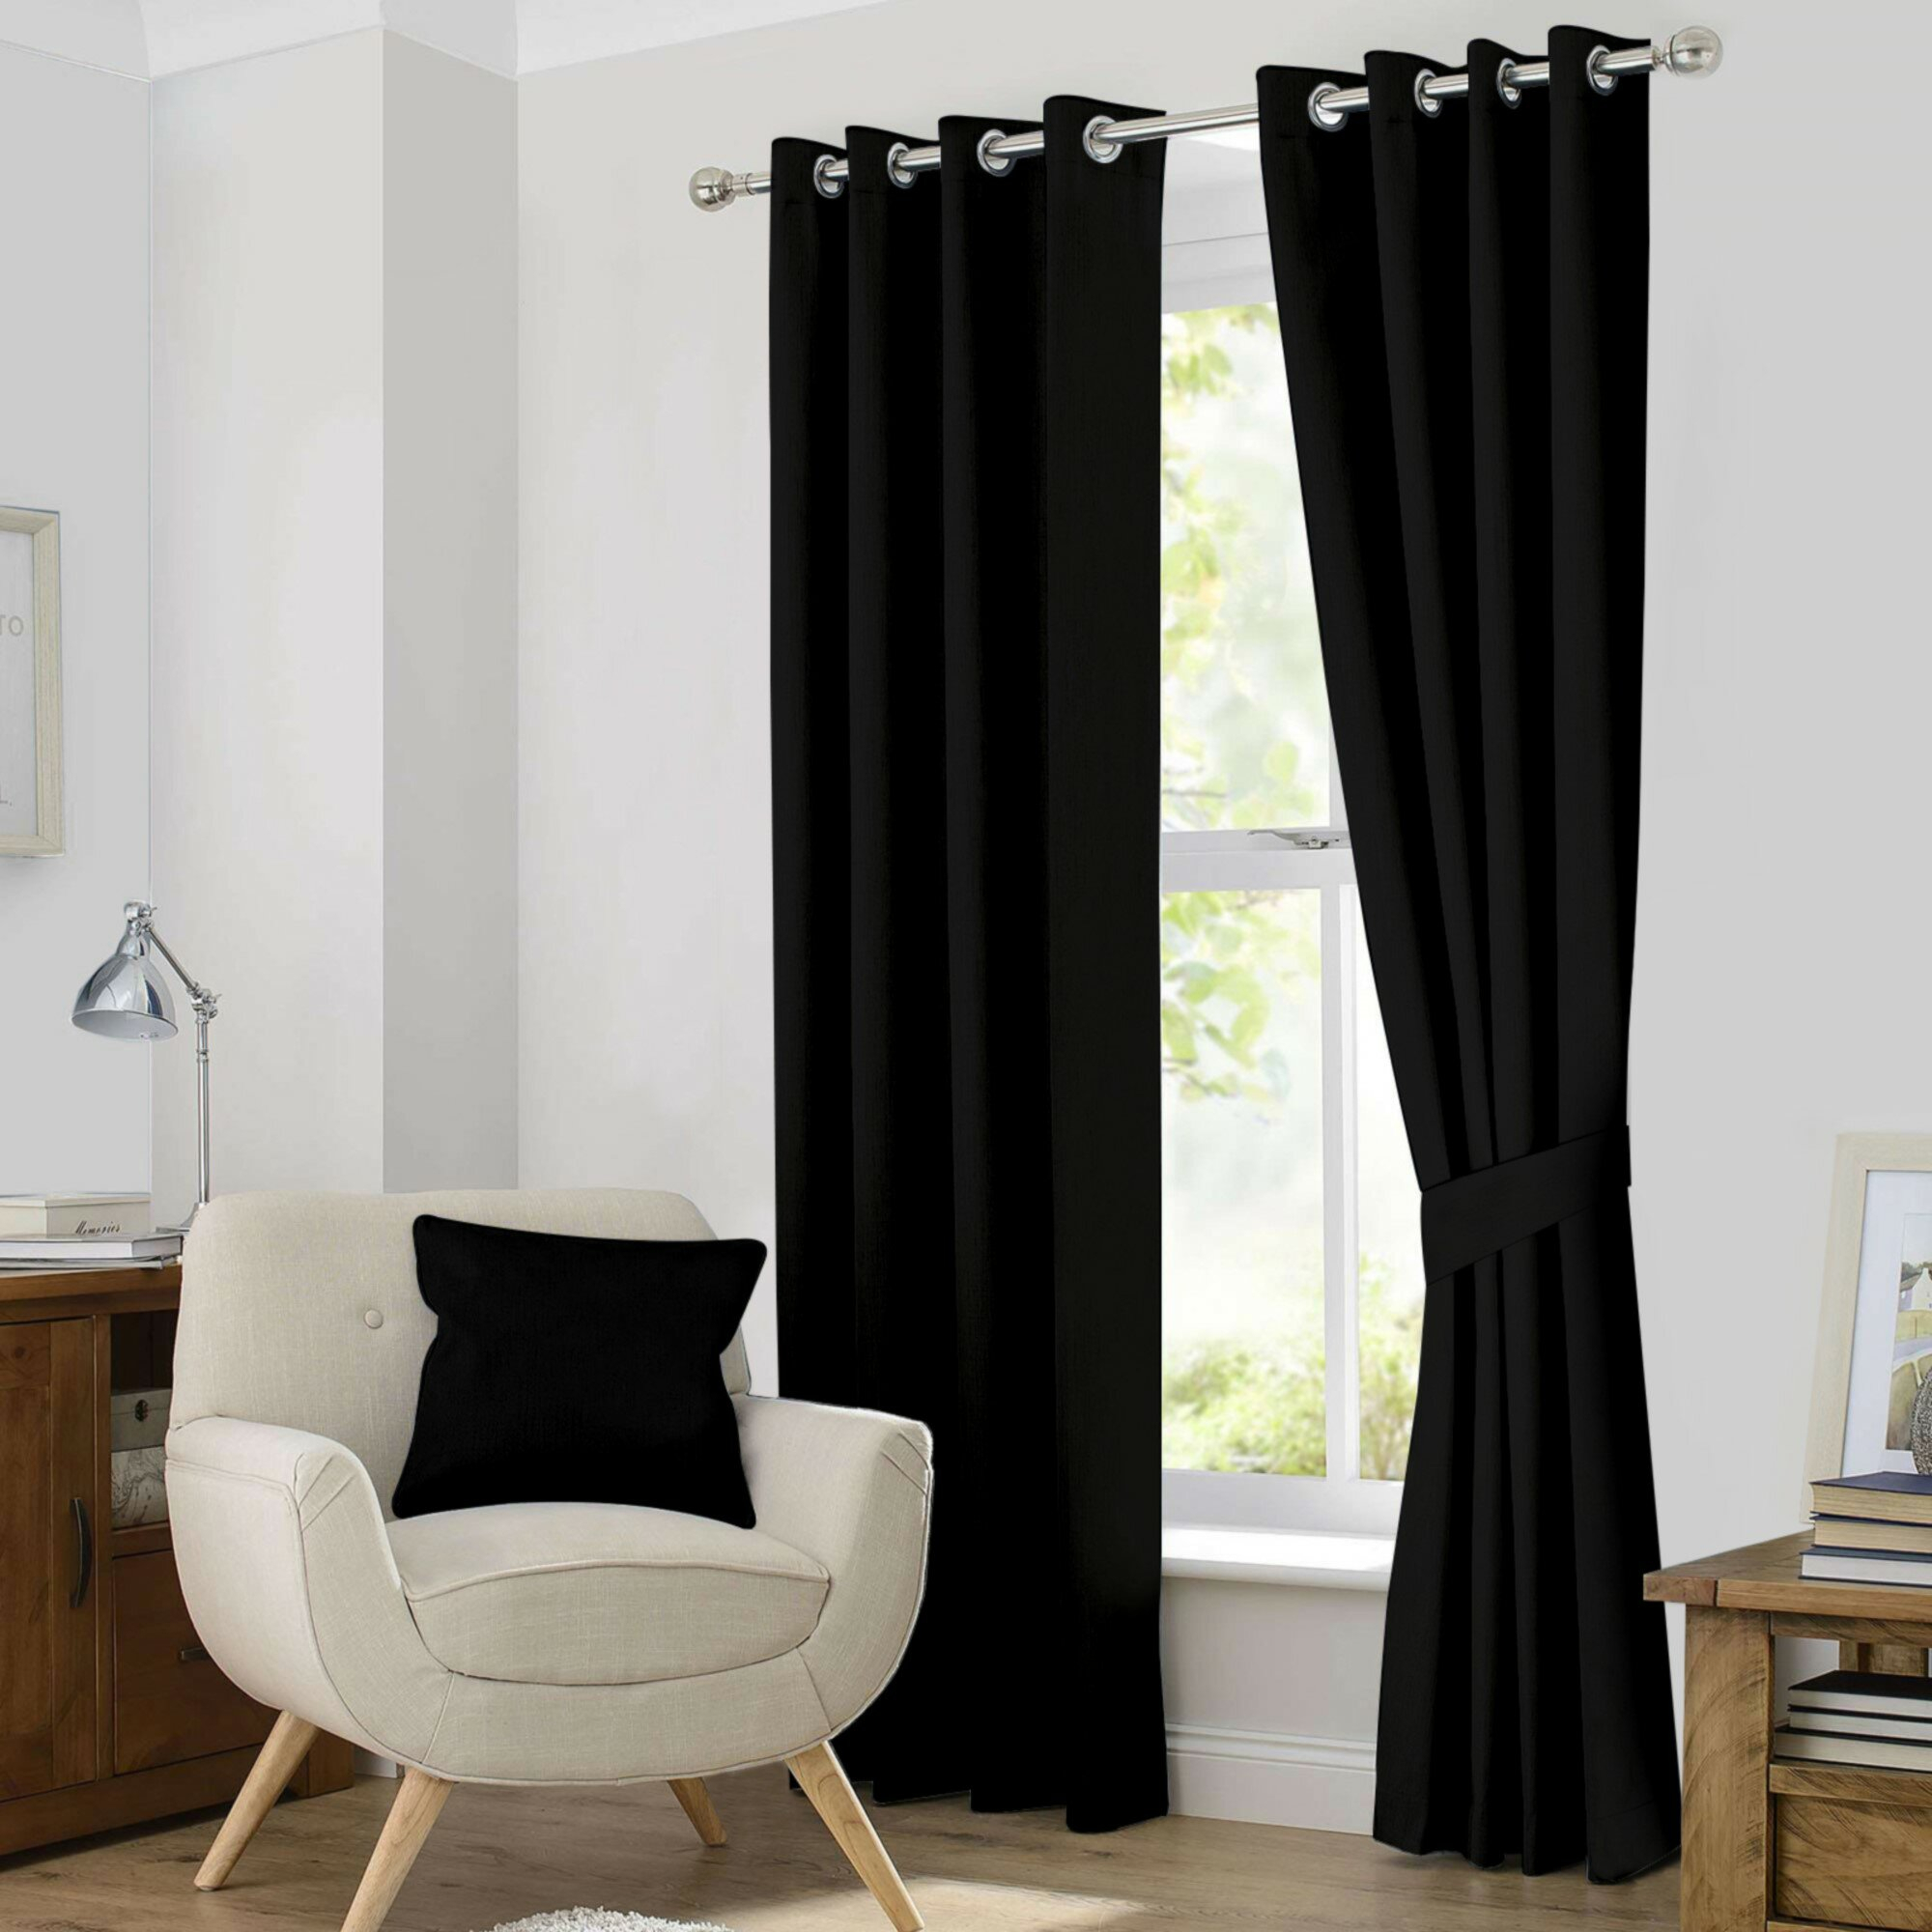 Kaylee Solid Blackout Thermal Grommet Curtain Panels With Regard To Classic Hotel Quality Water Resistant Fabric Curtains Set With Tiebacks (Gallery 9 of 20)